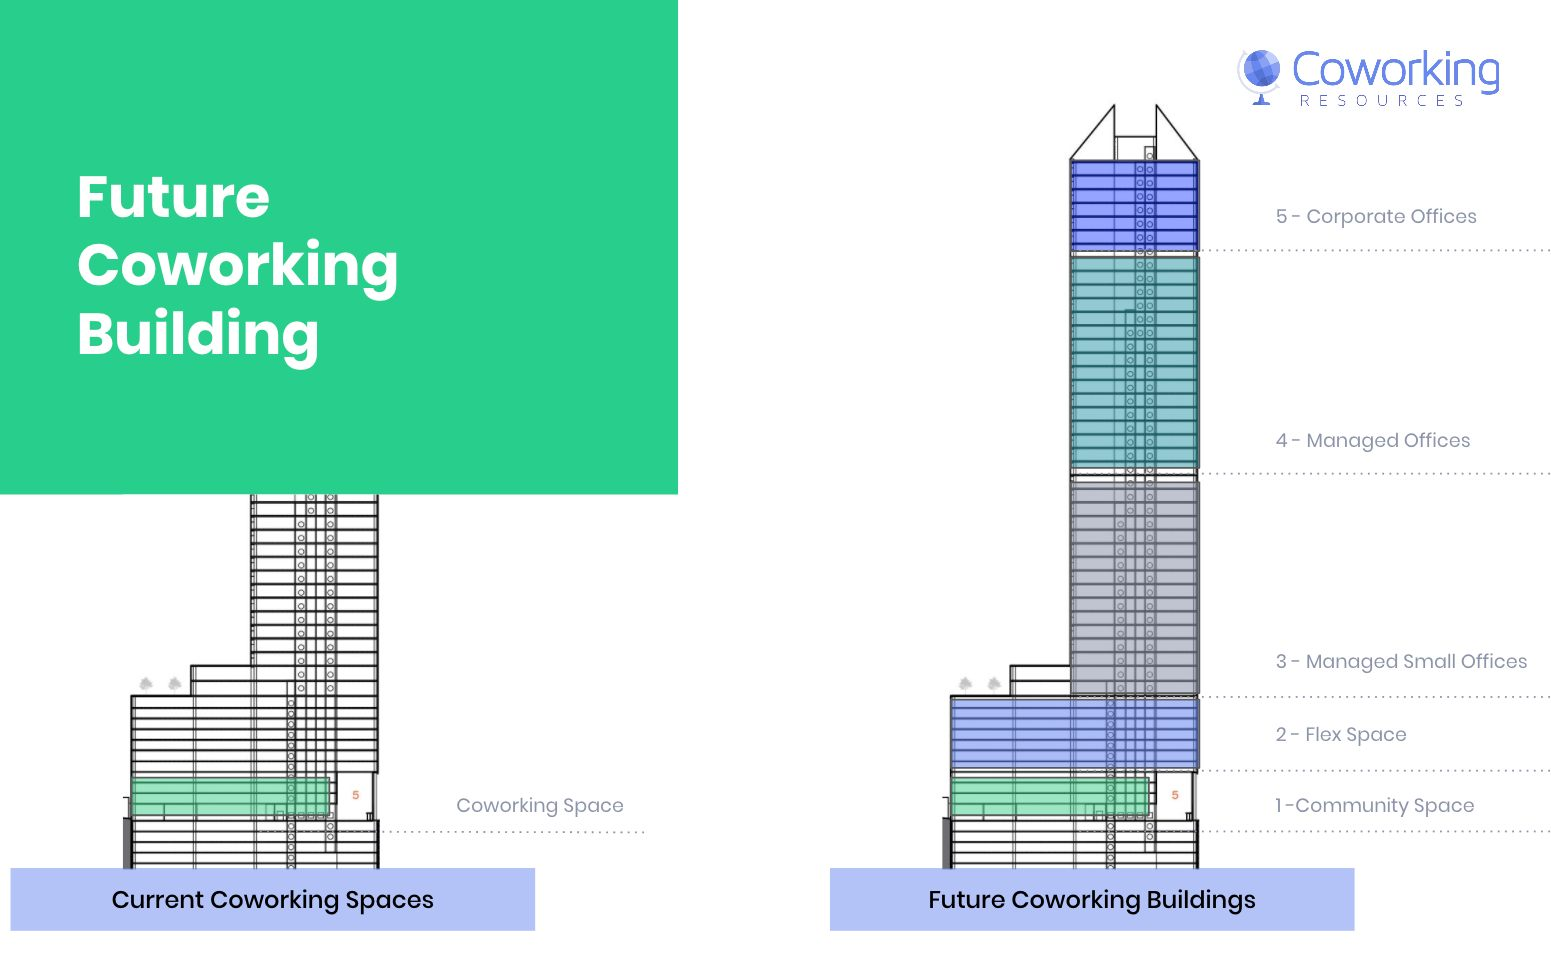 Coworking Building Vision 2020